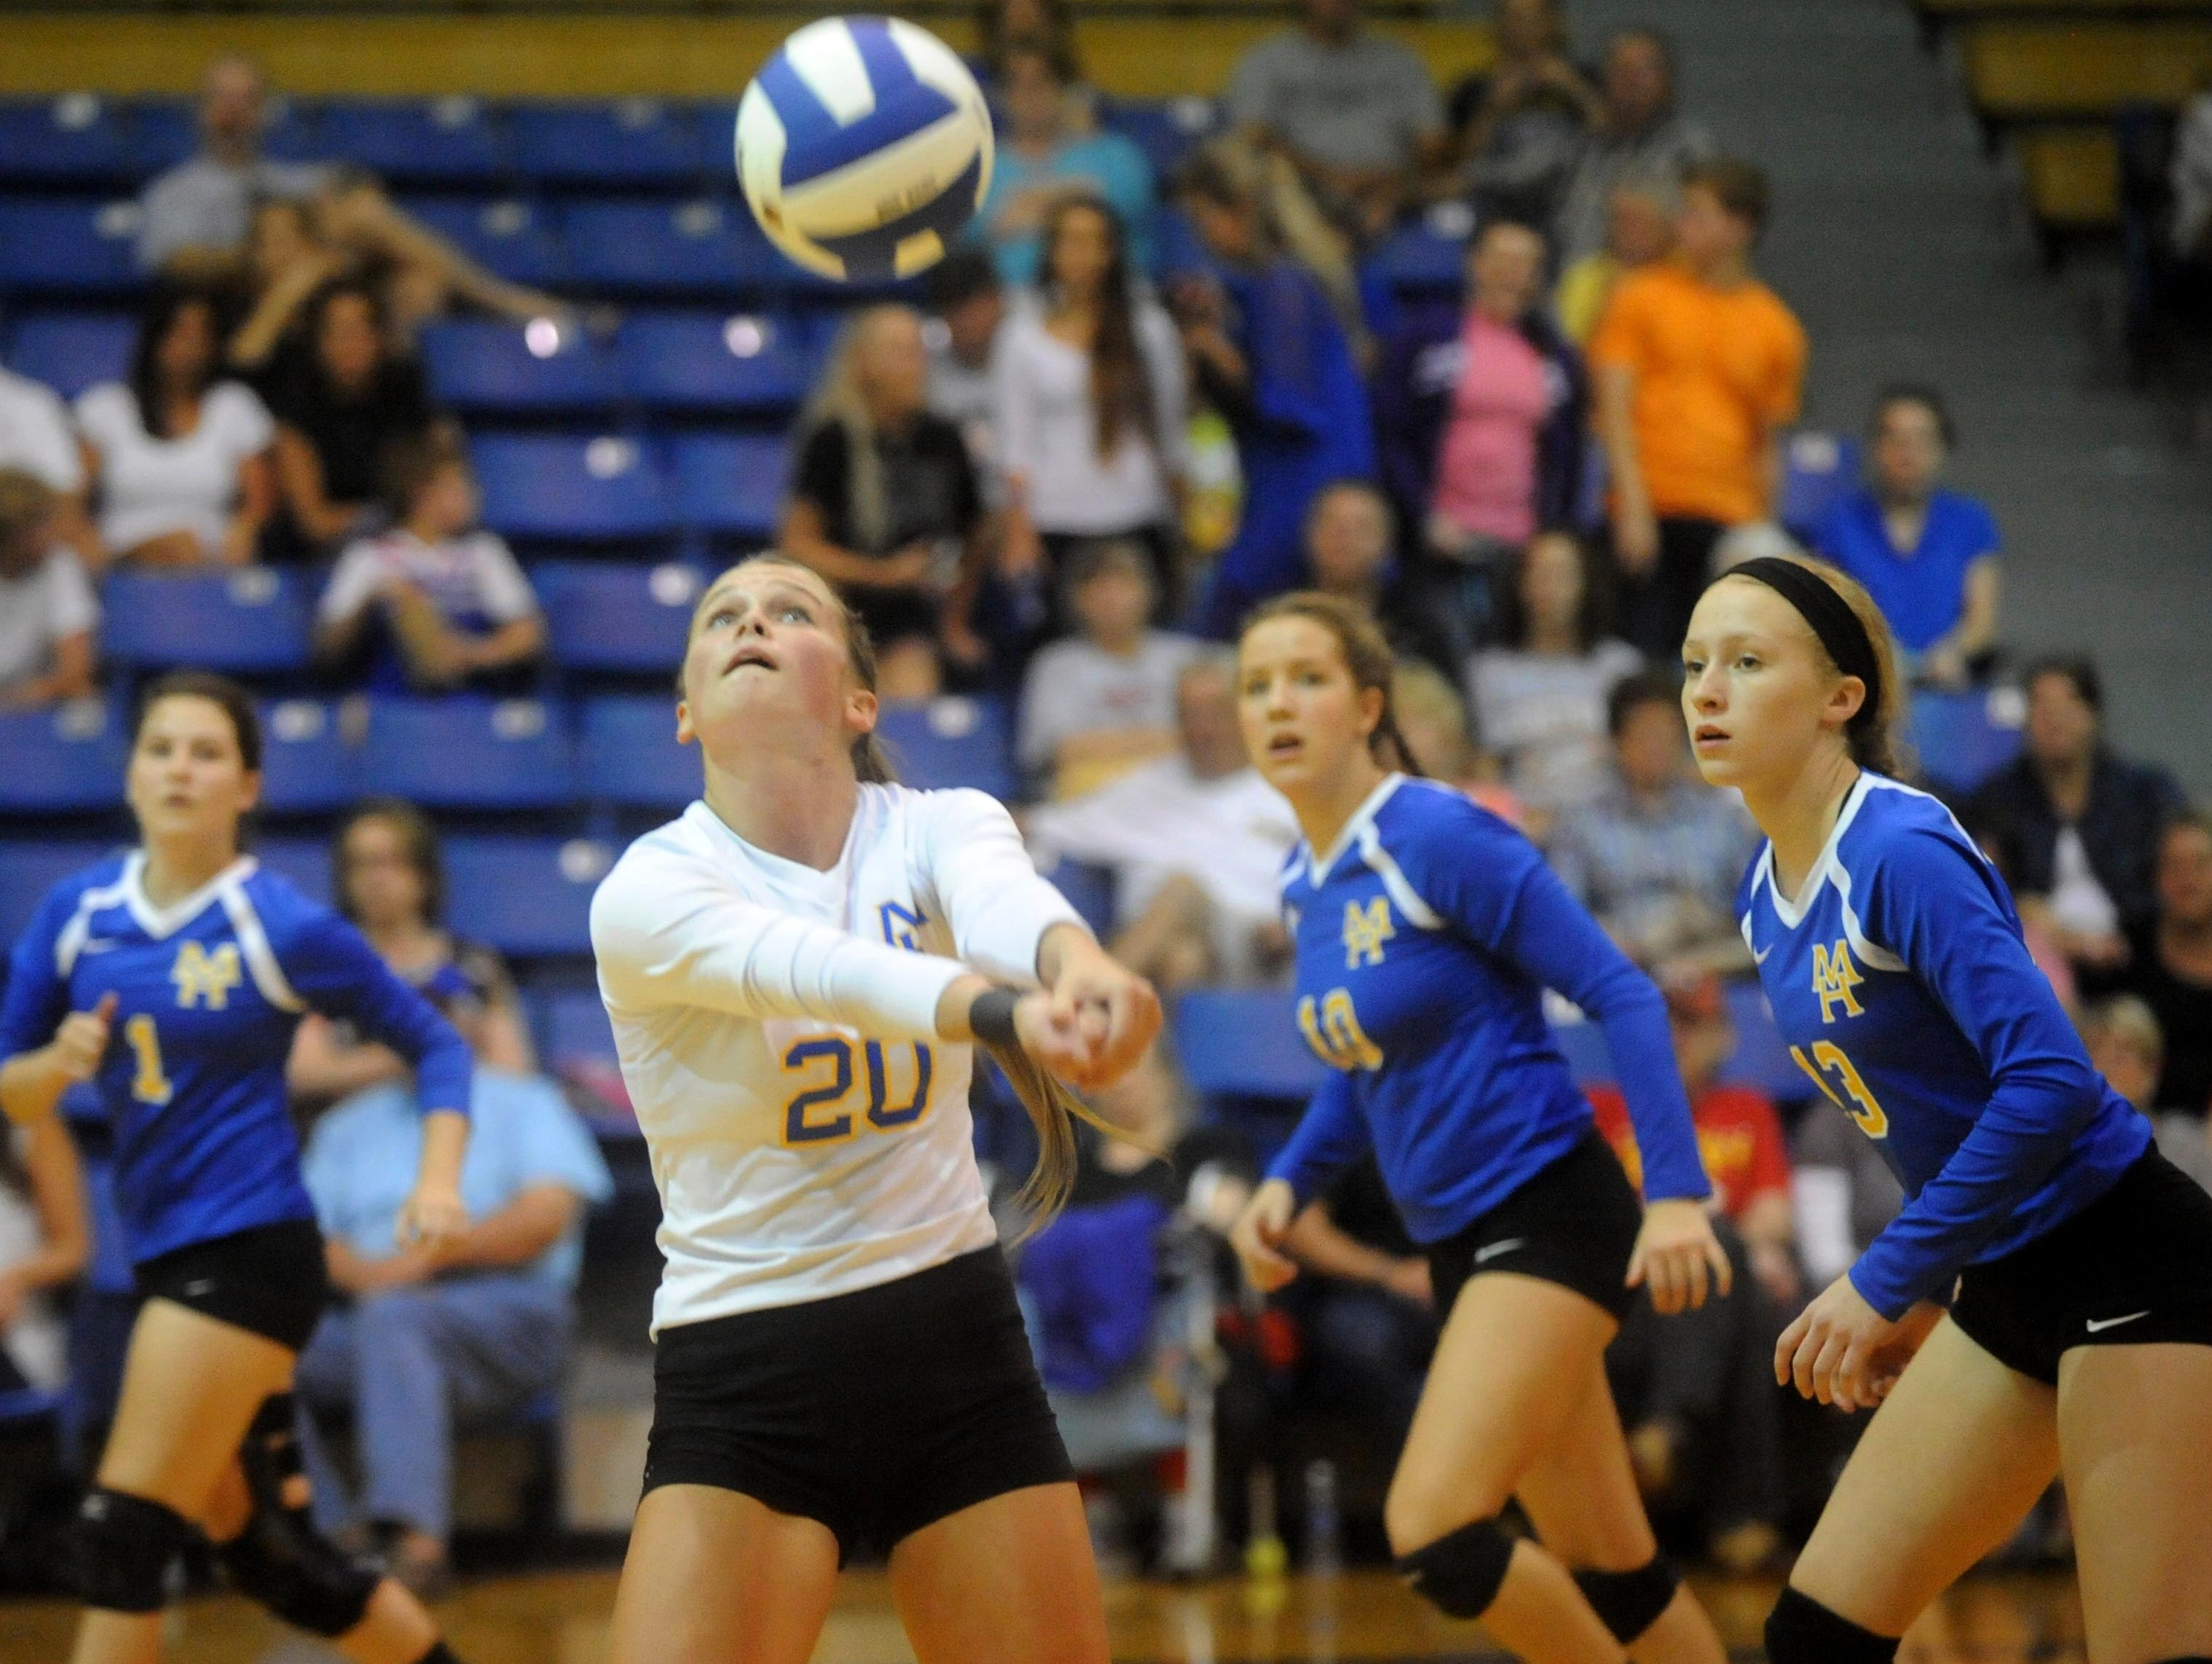 Mountain Home's McKenzie Brannon (20) makes a pass during the Lady Bombers' five-set victory over Marion on Thursday night at The Hangar. Also pictured are, from left, Ashlyn Paden, Cassie Martin and Hannah Pfeifer.